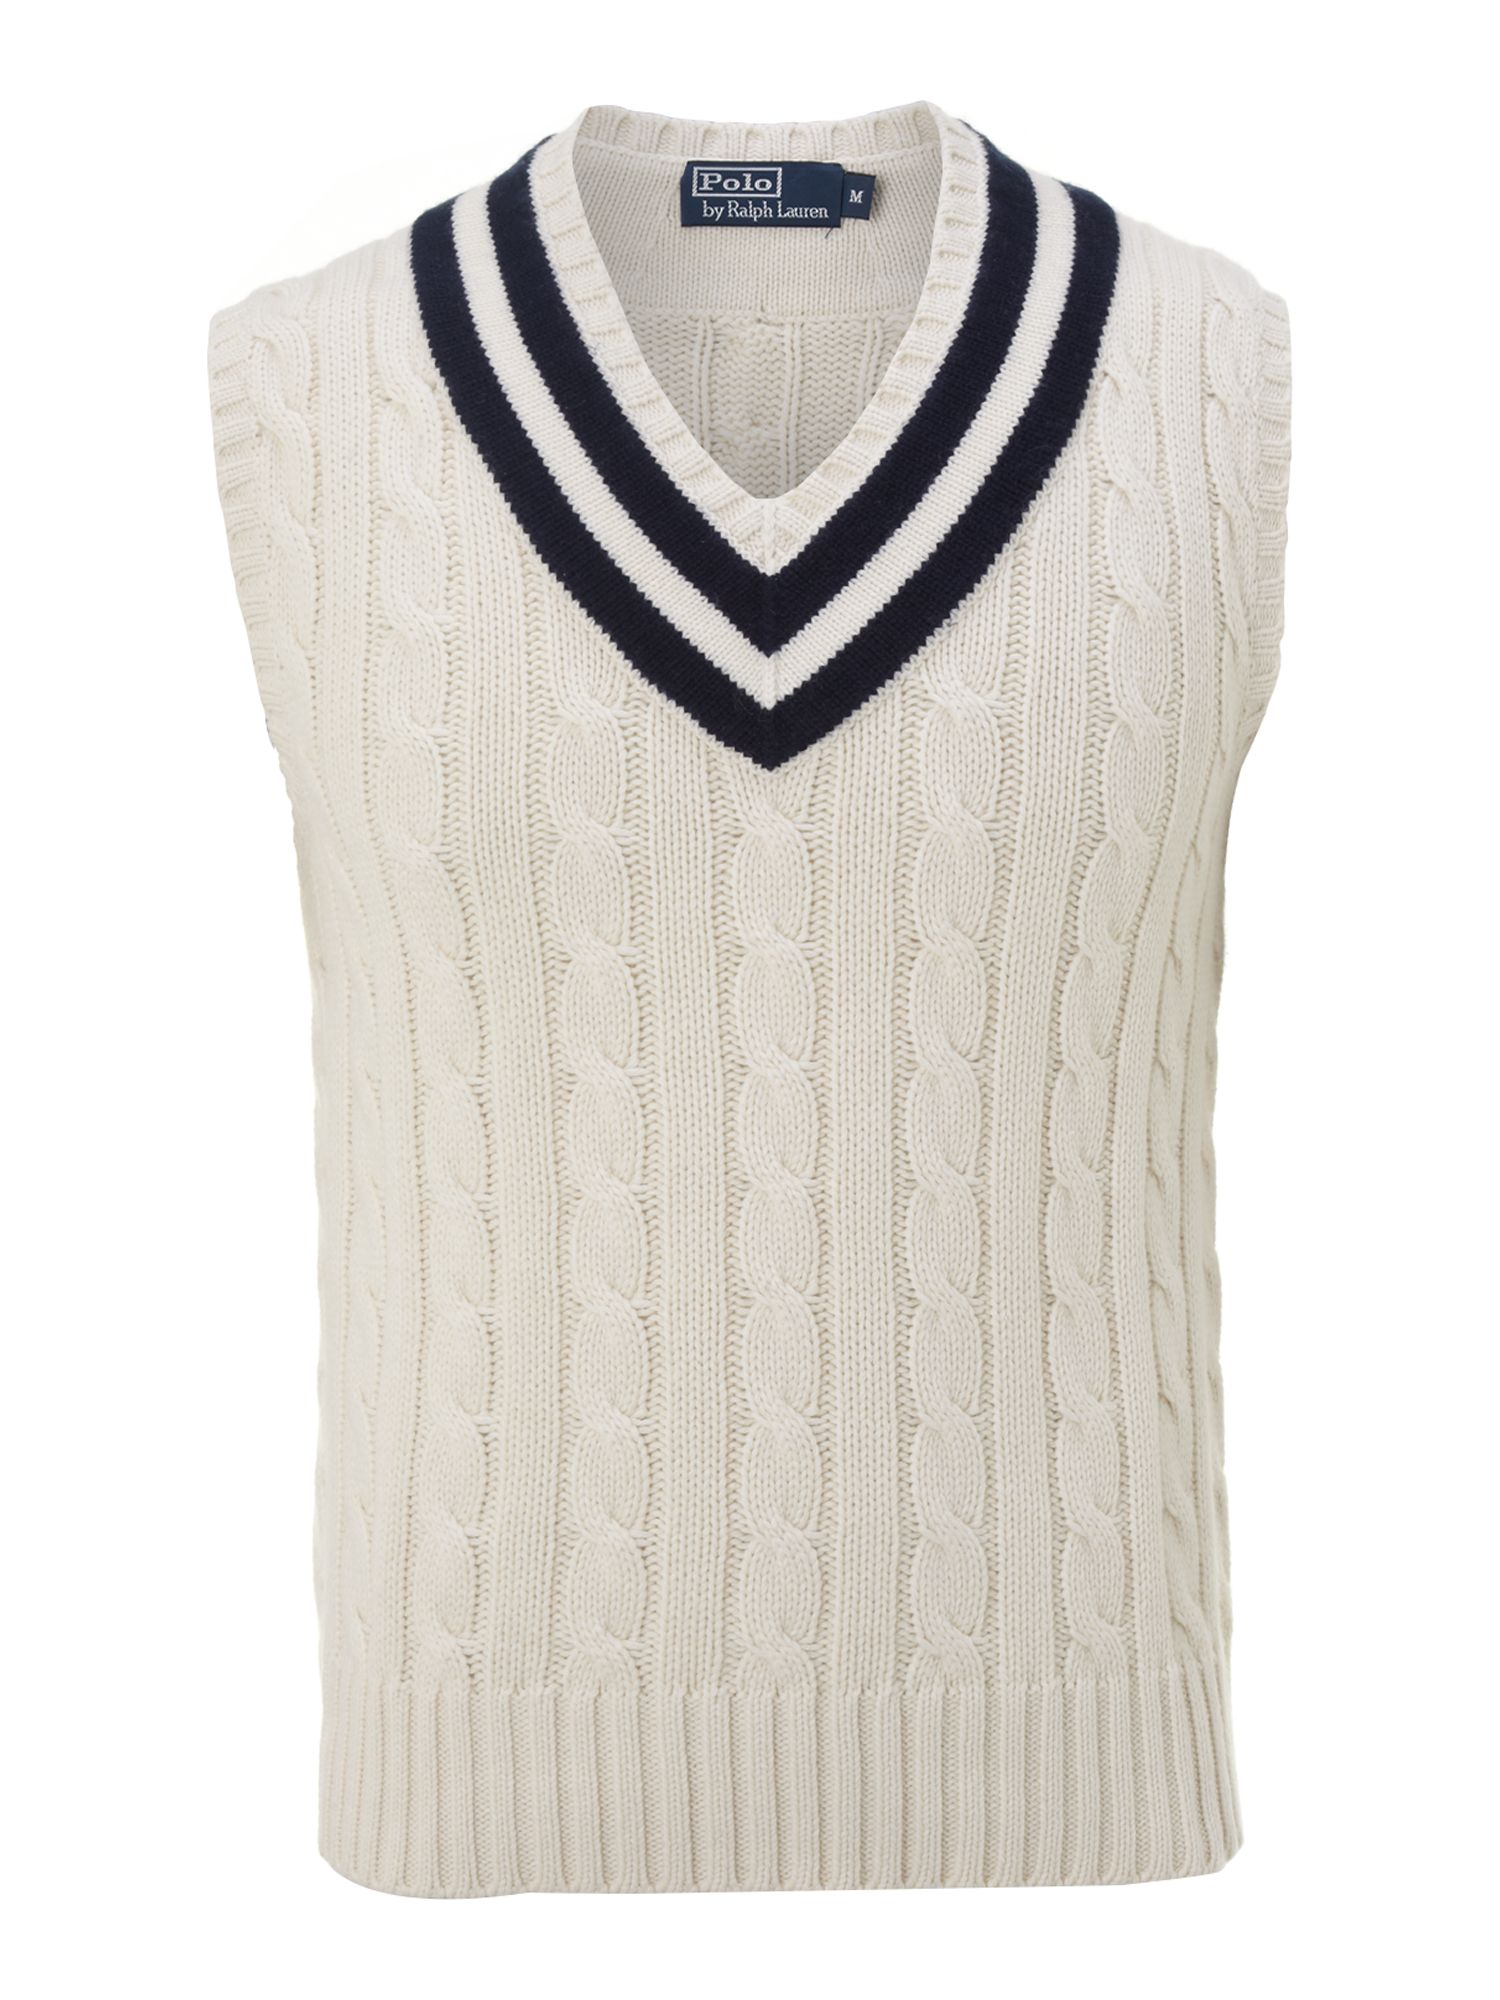 Wimbledon cable knitted tennis vest